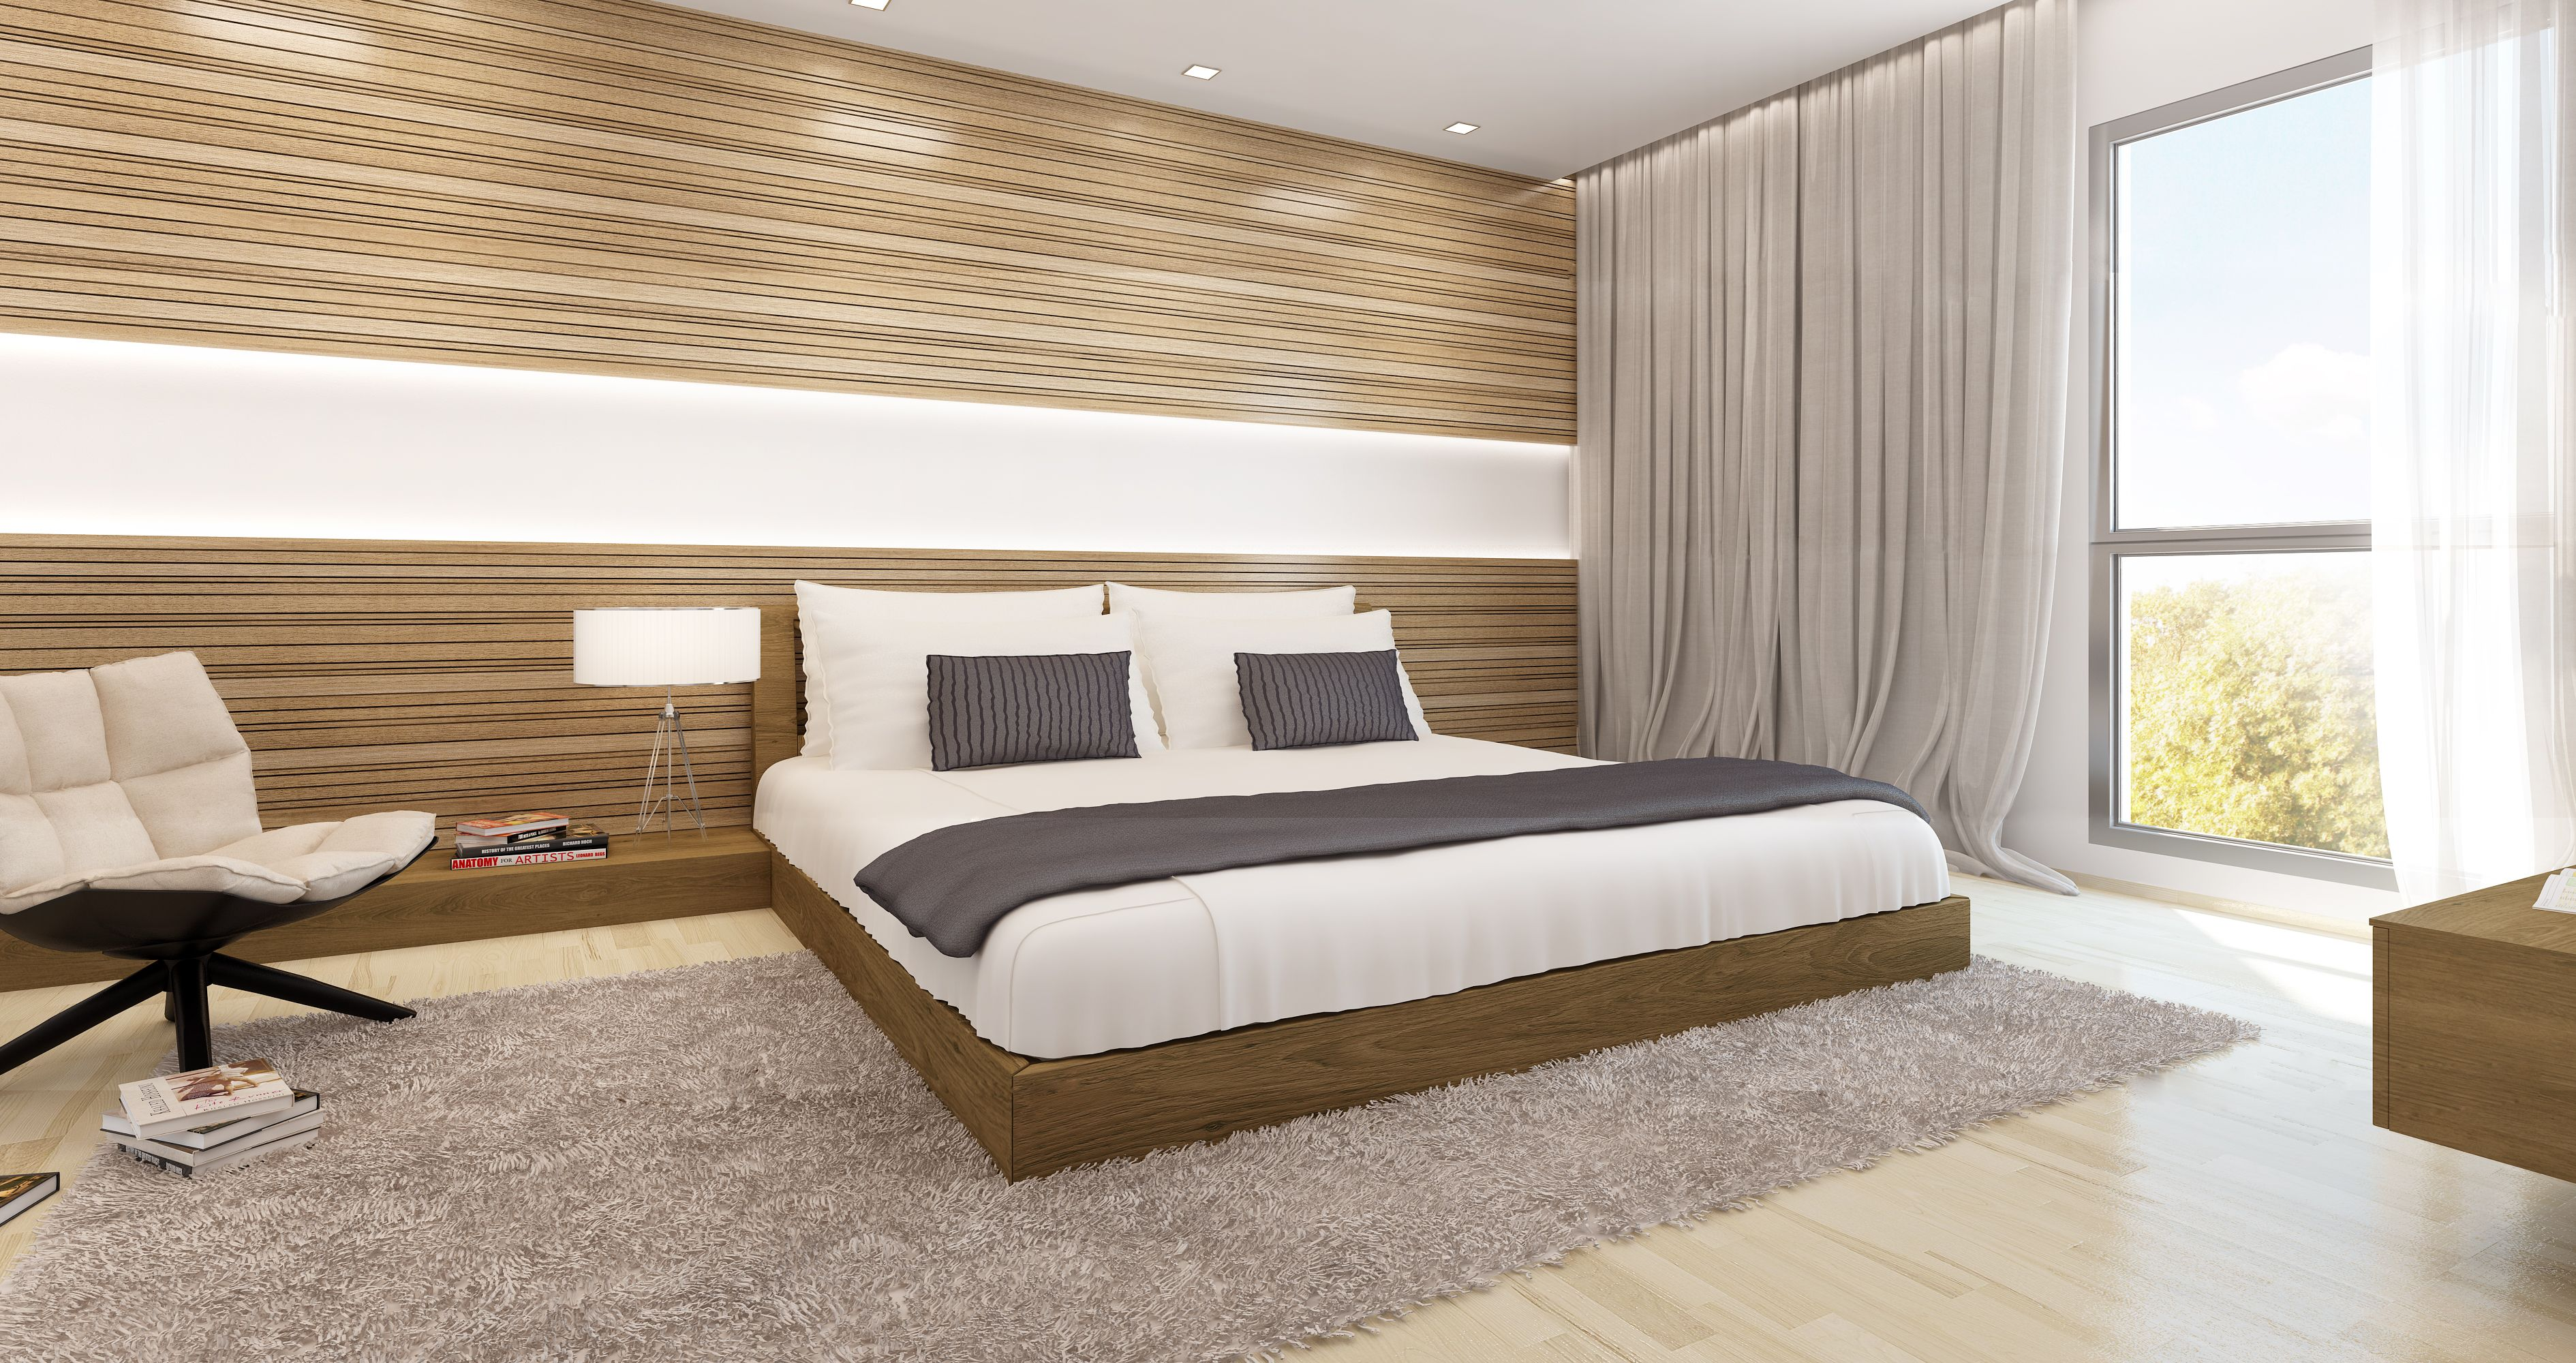 Beautiful 3D Bedroom Architecture Render. | Our Bedroom Renders | Pinterest |  Architecture